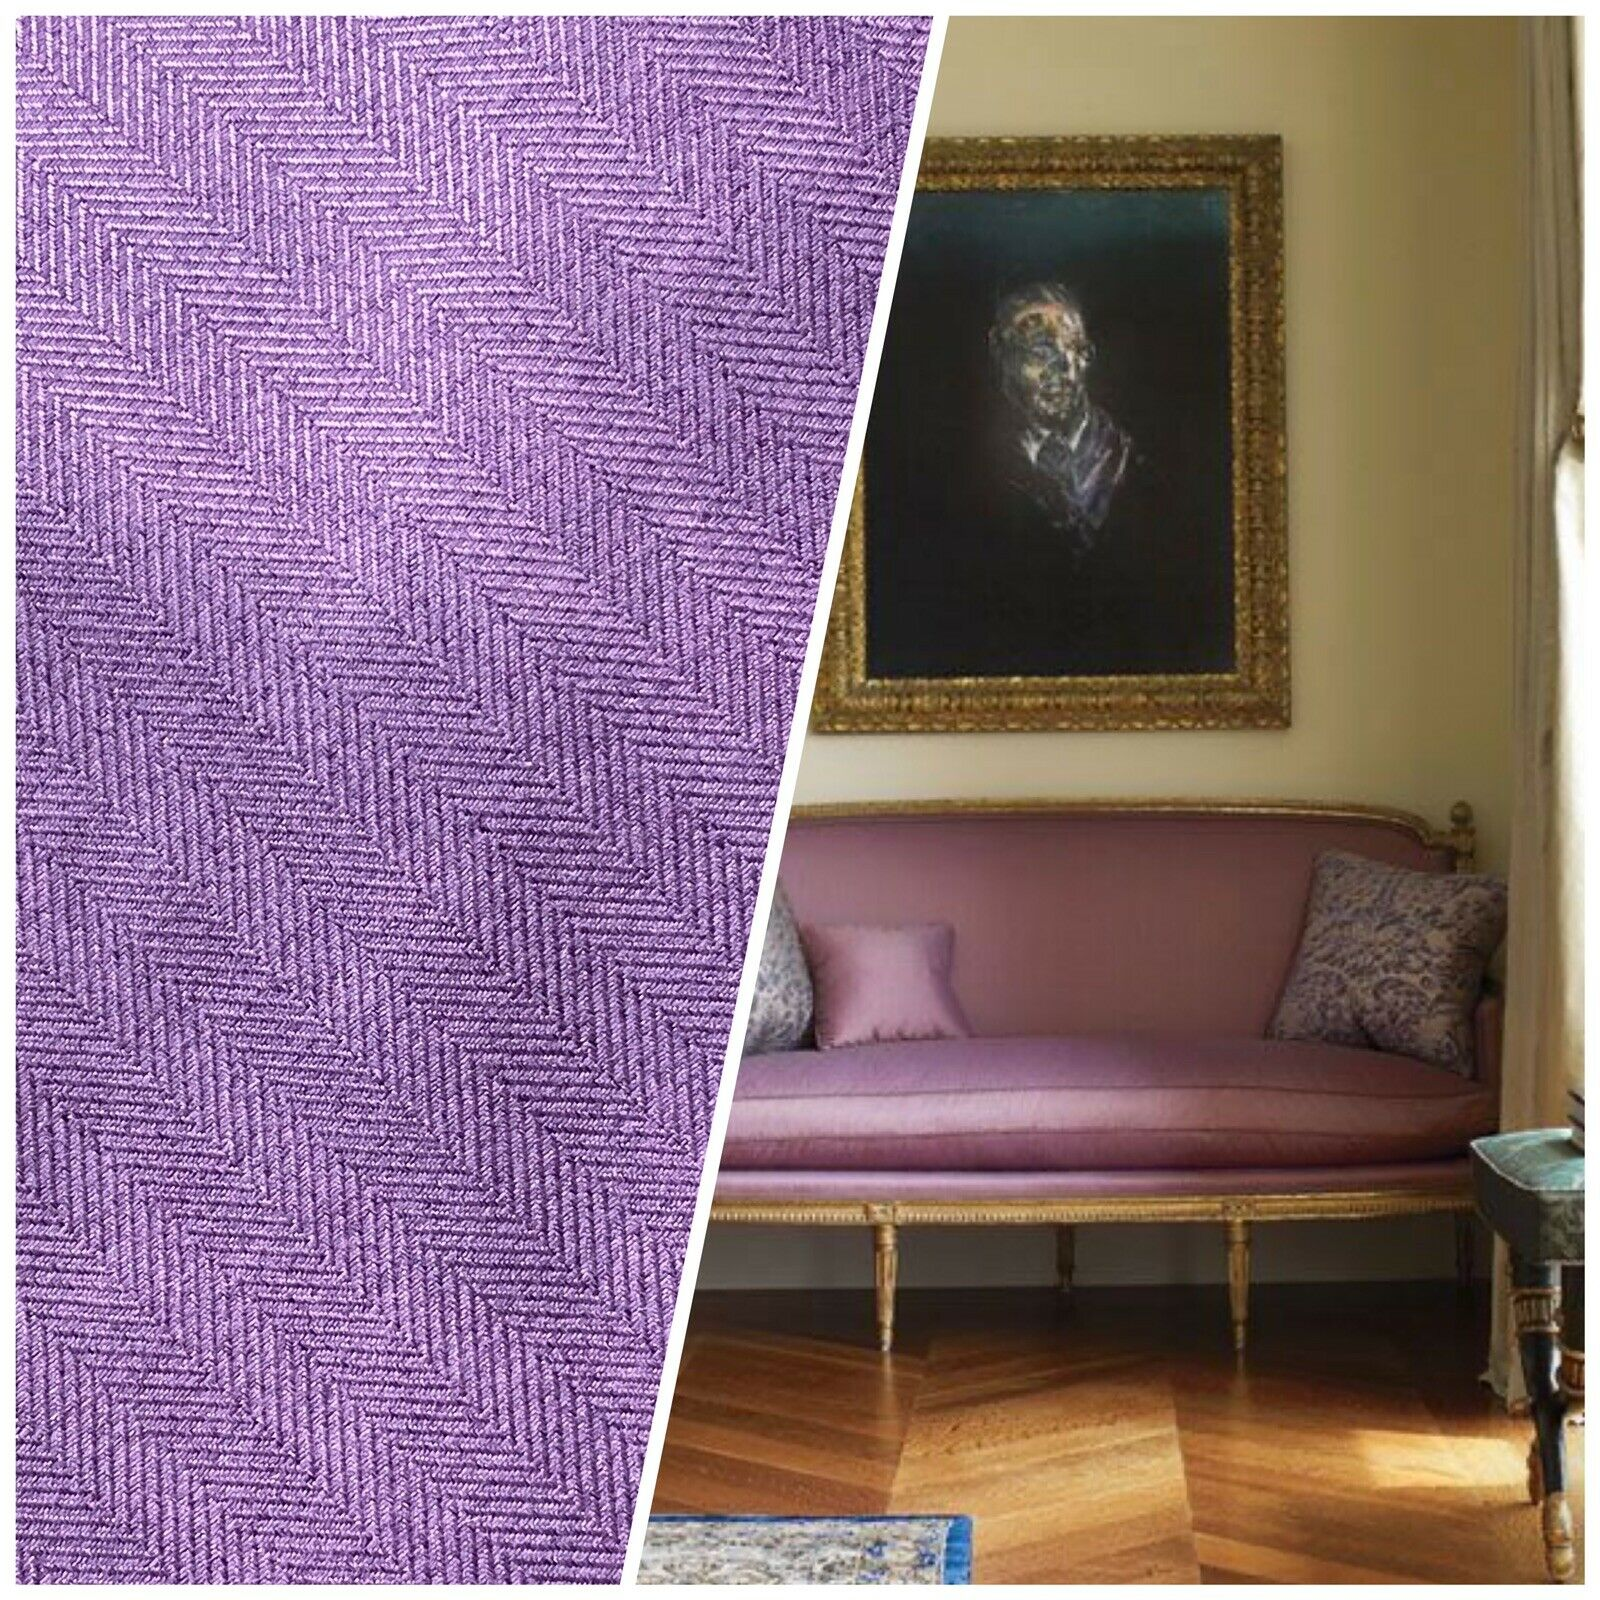 Duchess Eliana Designer Upholstery Herringbone Chevron Pattern Tweed Fabric -Lavender Purple